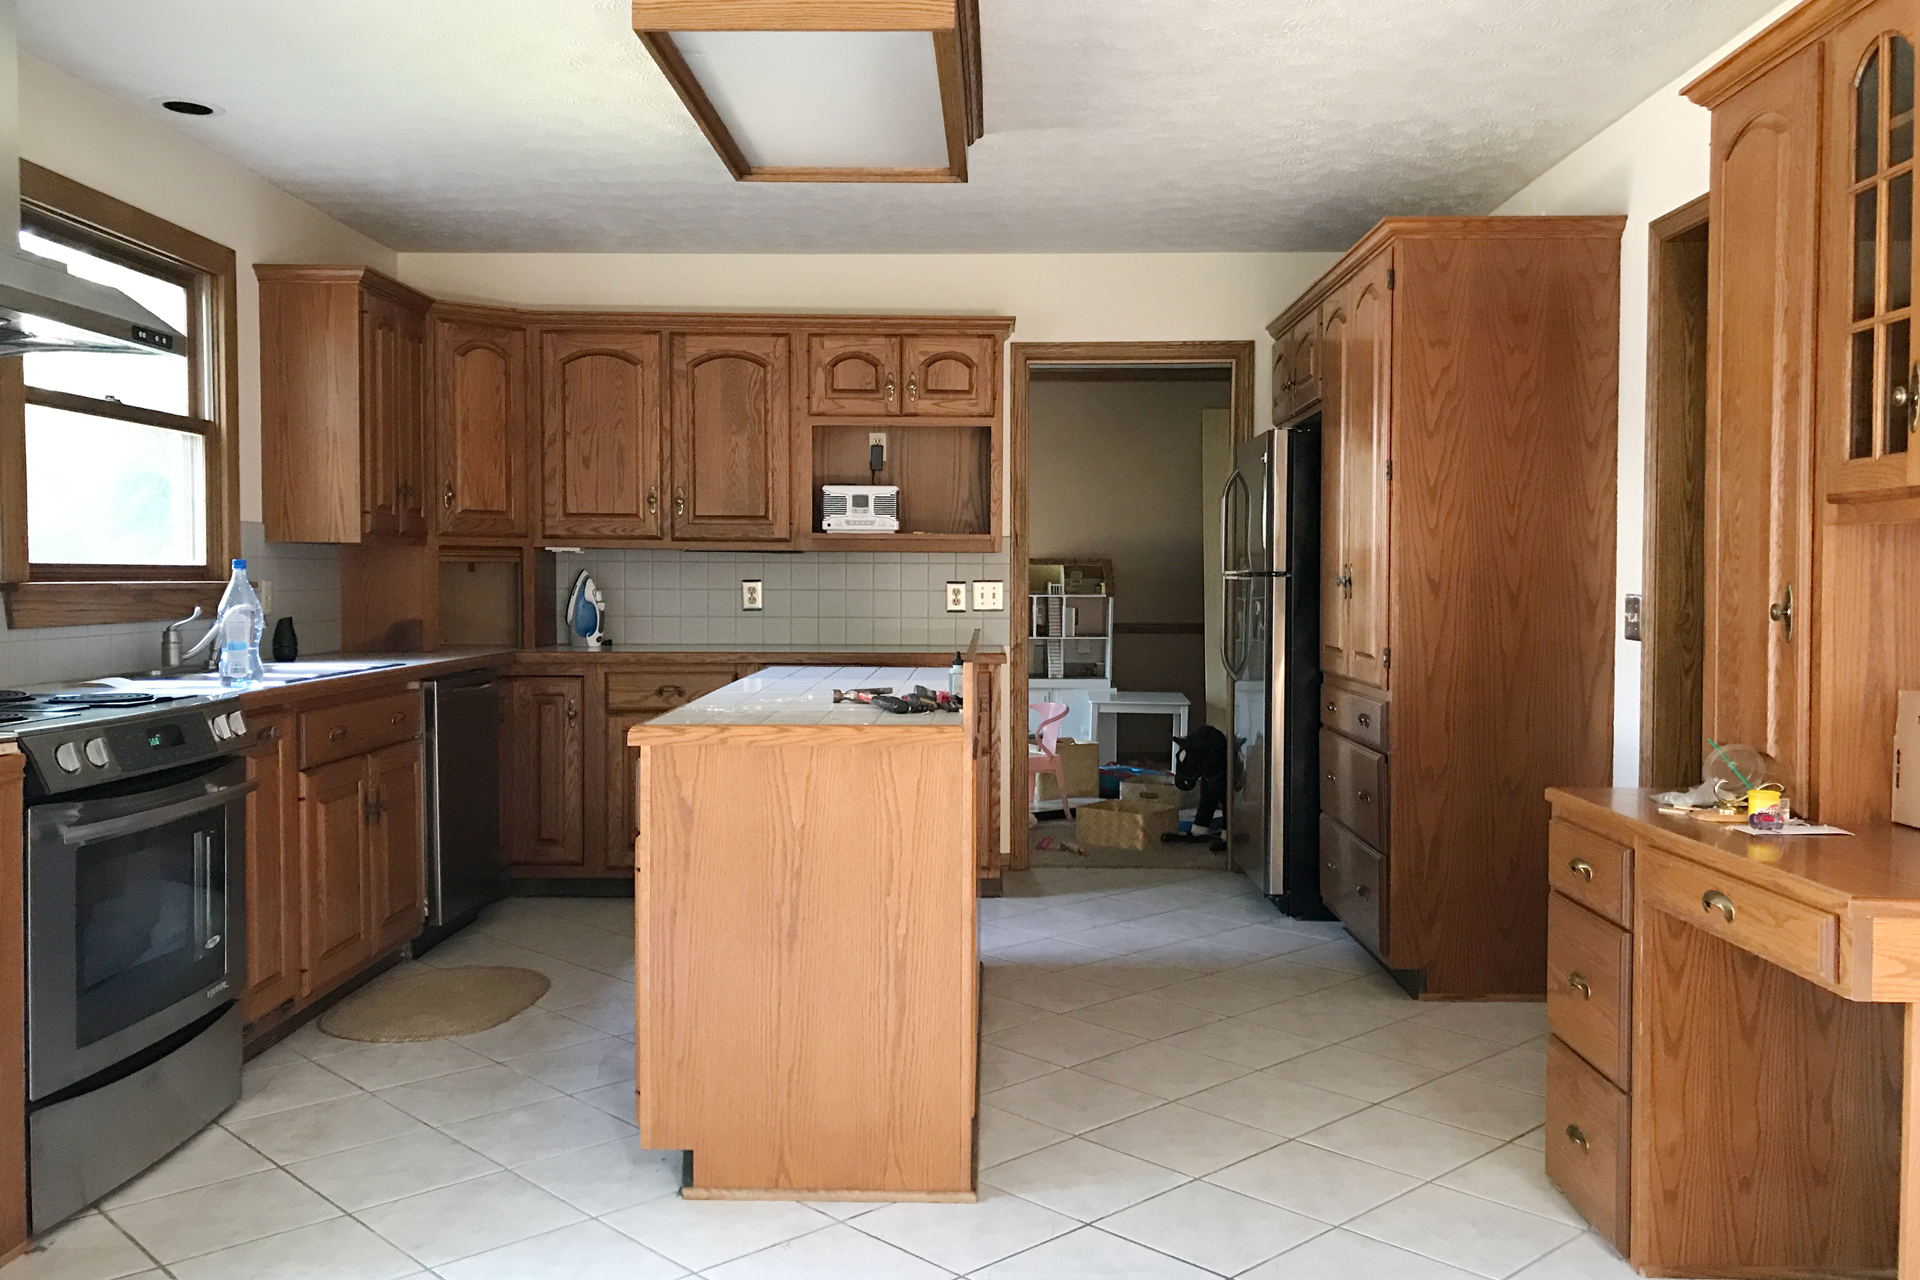 High Quality KITCHEN PROGRESS: Demolition And Appliance Shopping!